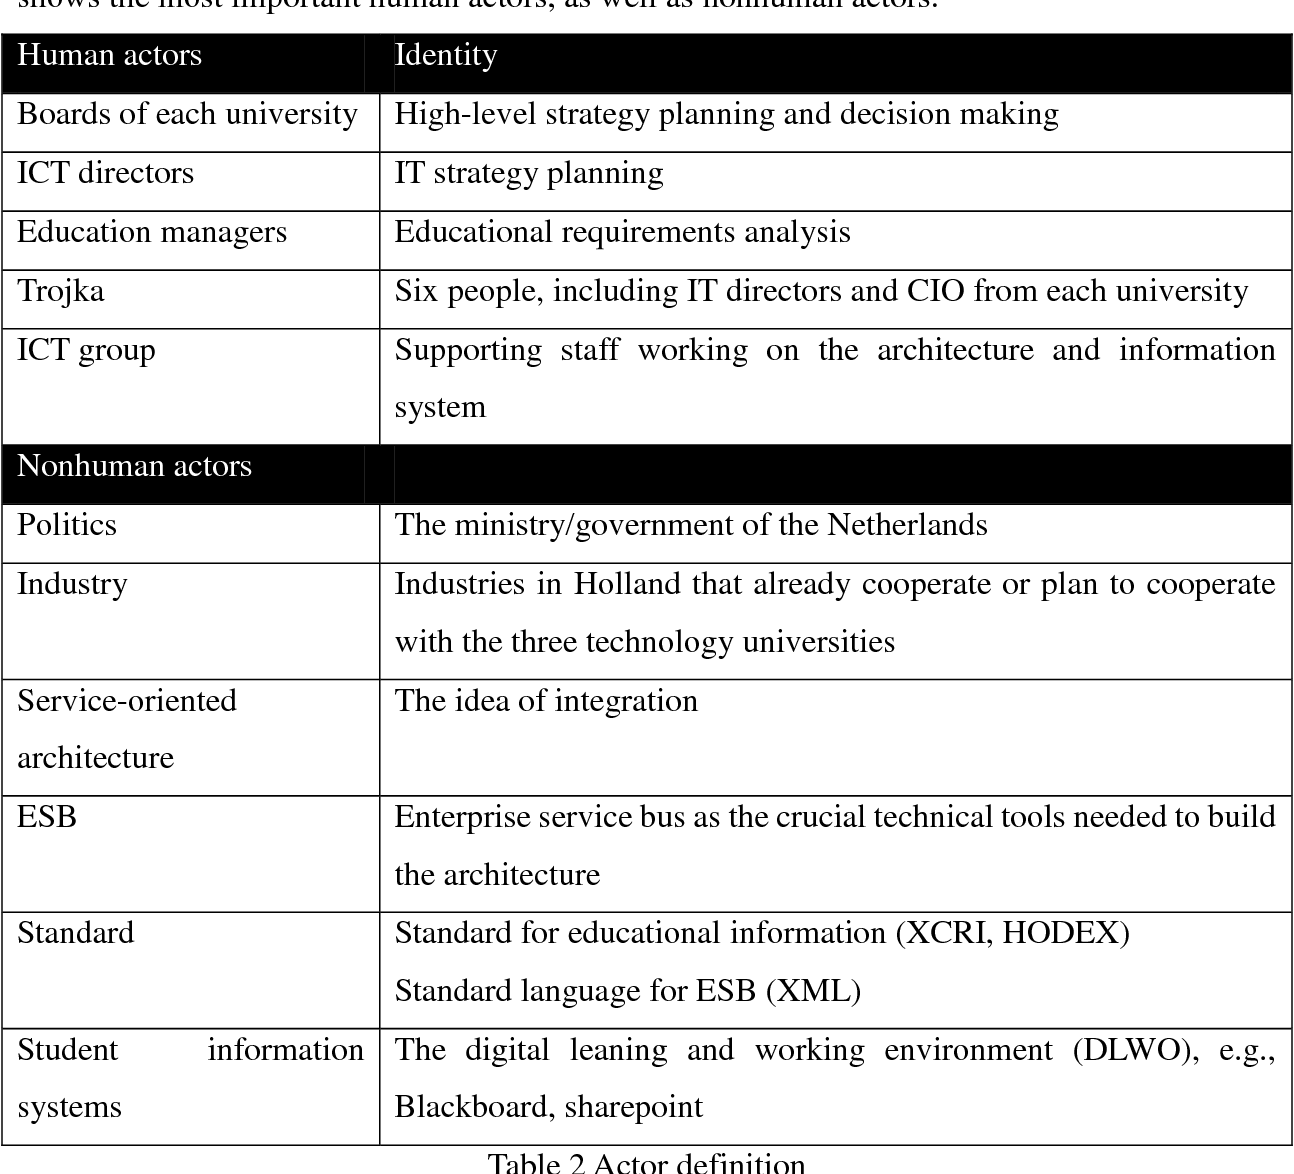 Table 2 from Using actor-network theory to understand inter